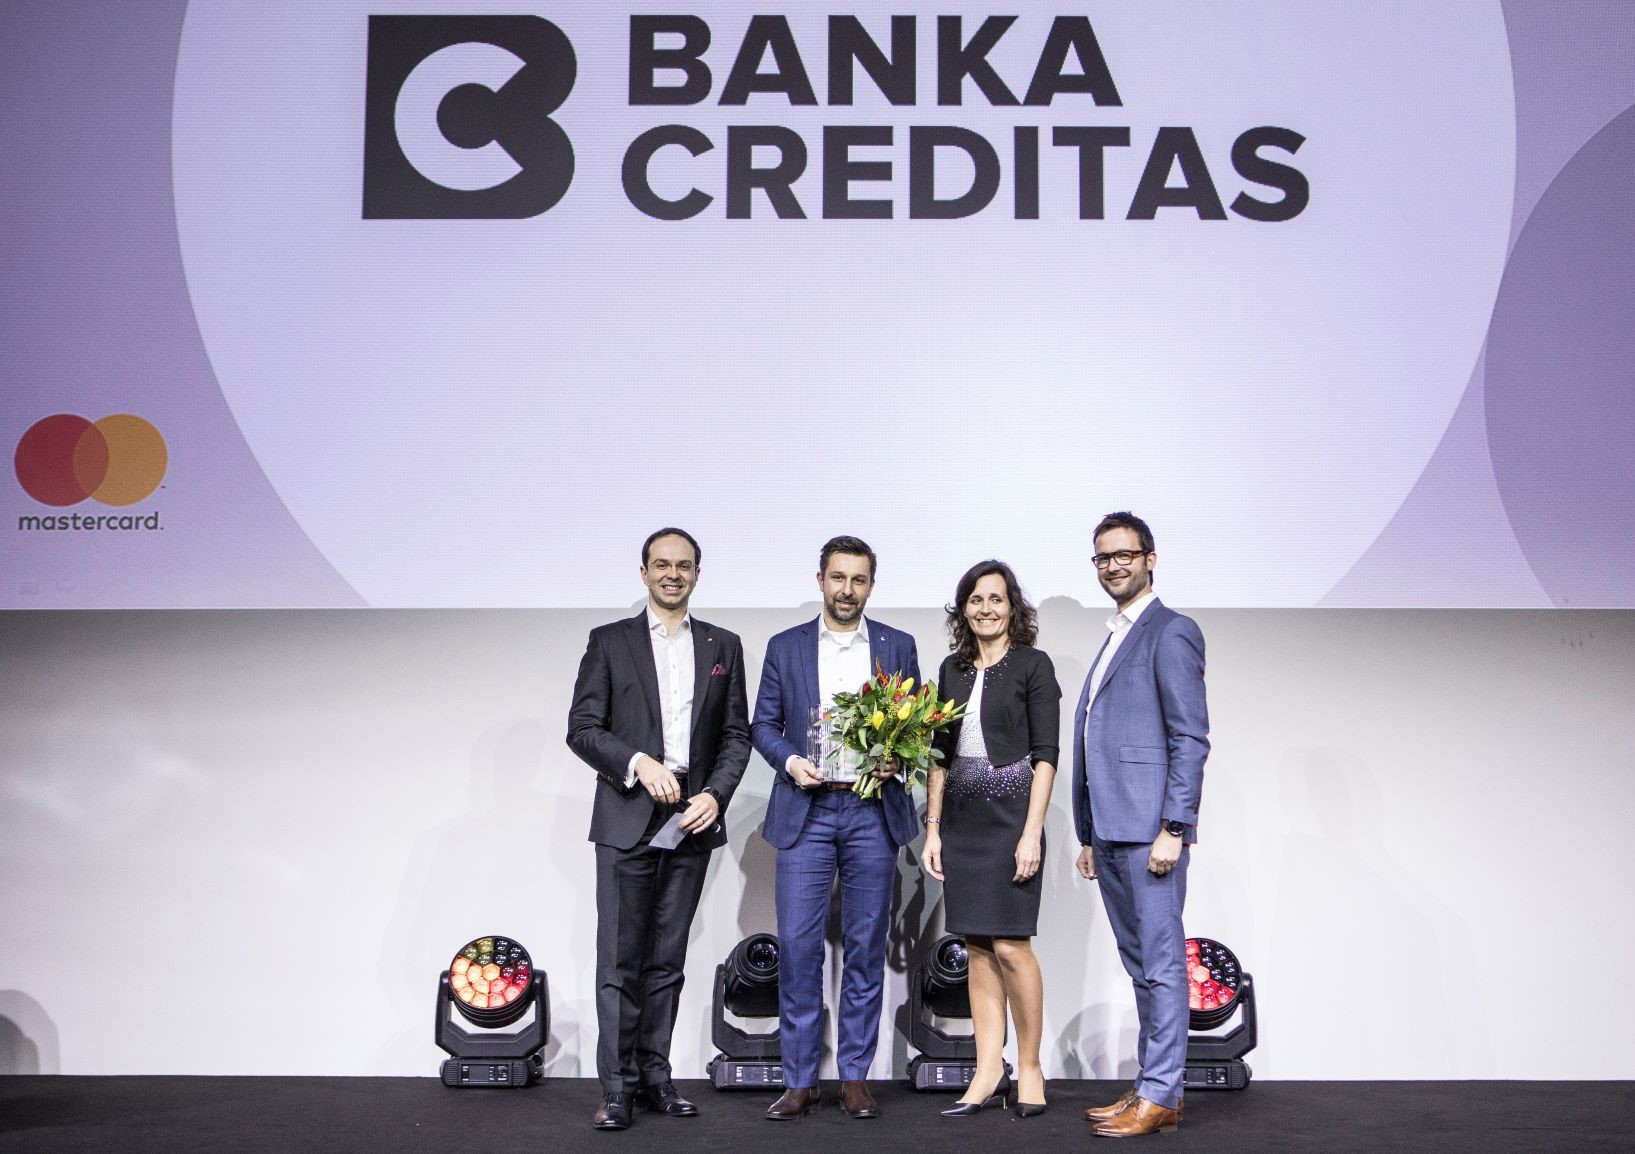 Banka CREDITAS - Special Mention 2018